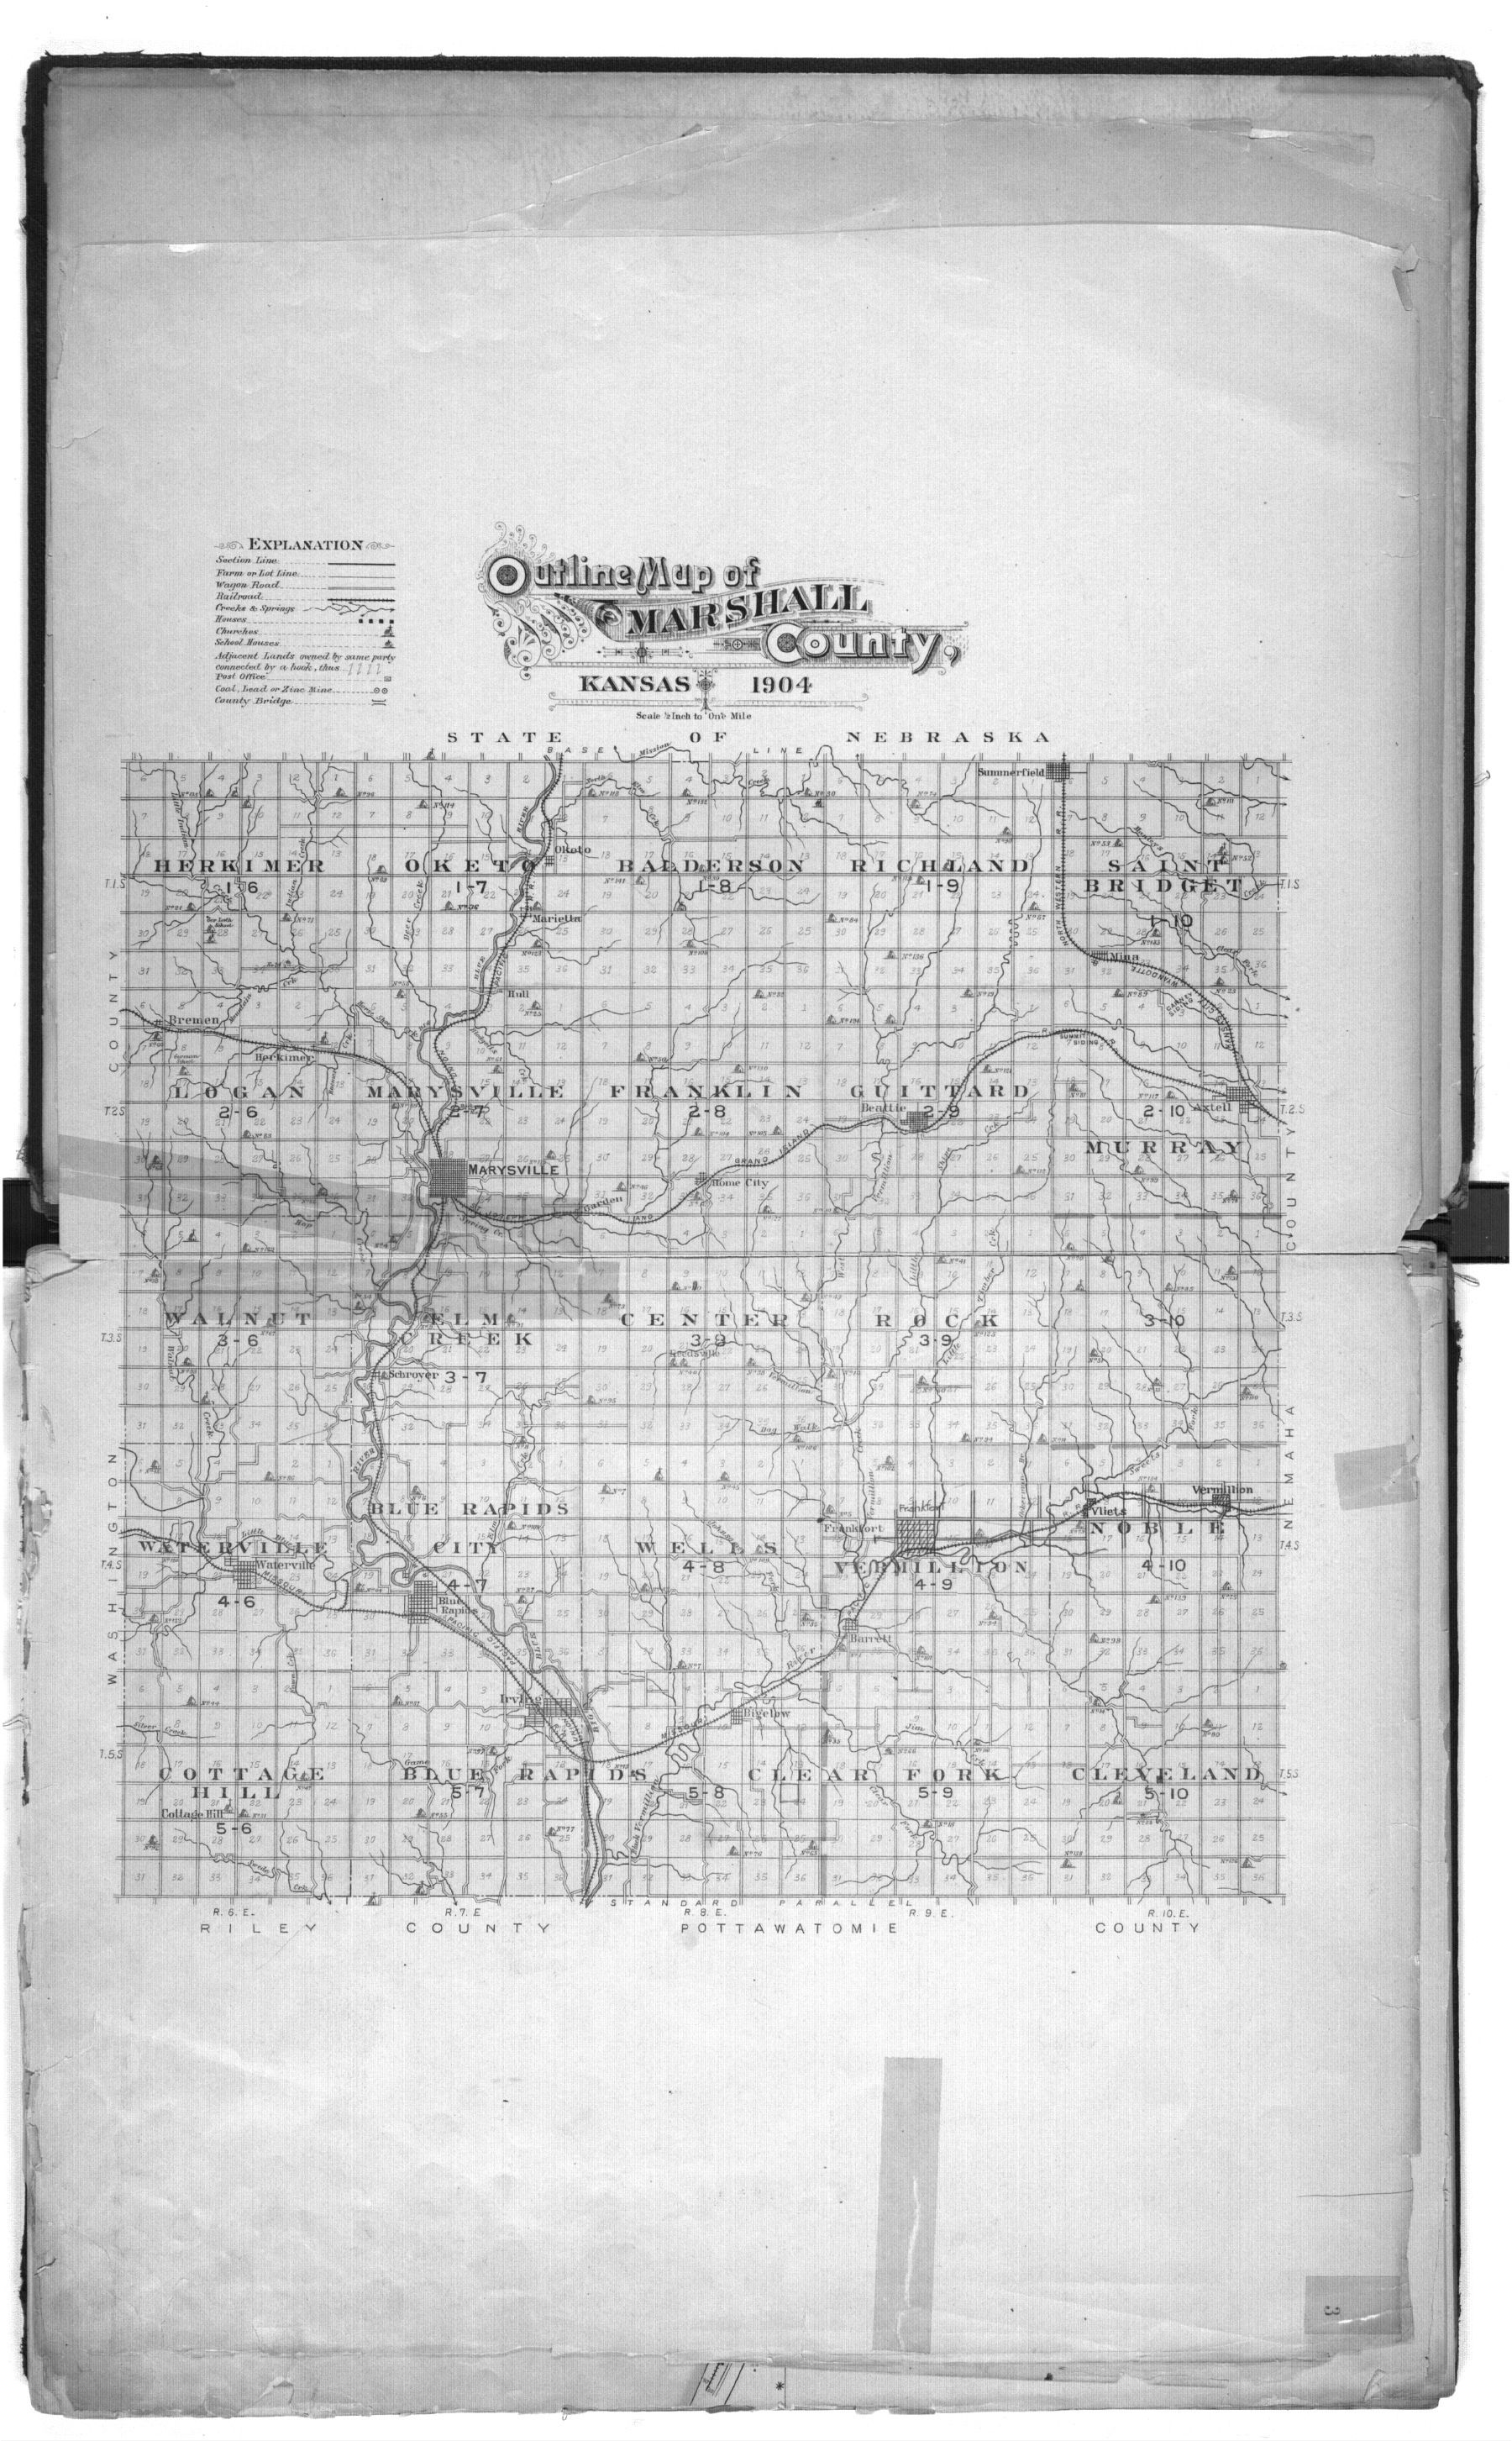 Plat book of Marshall County, Kansas - 2 & 3